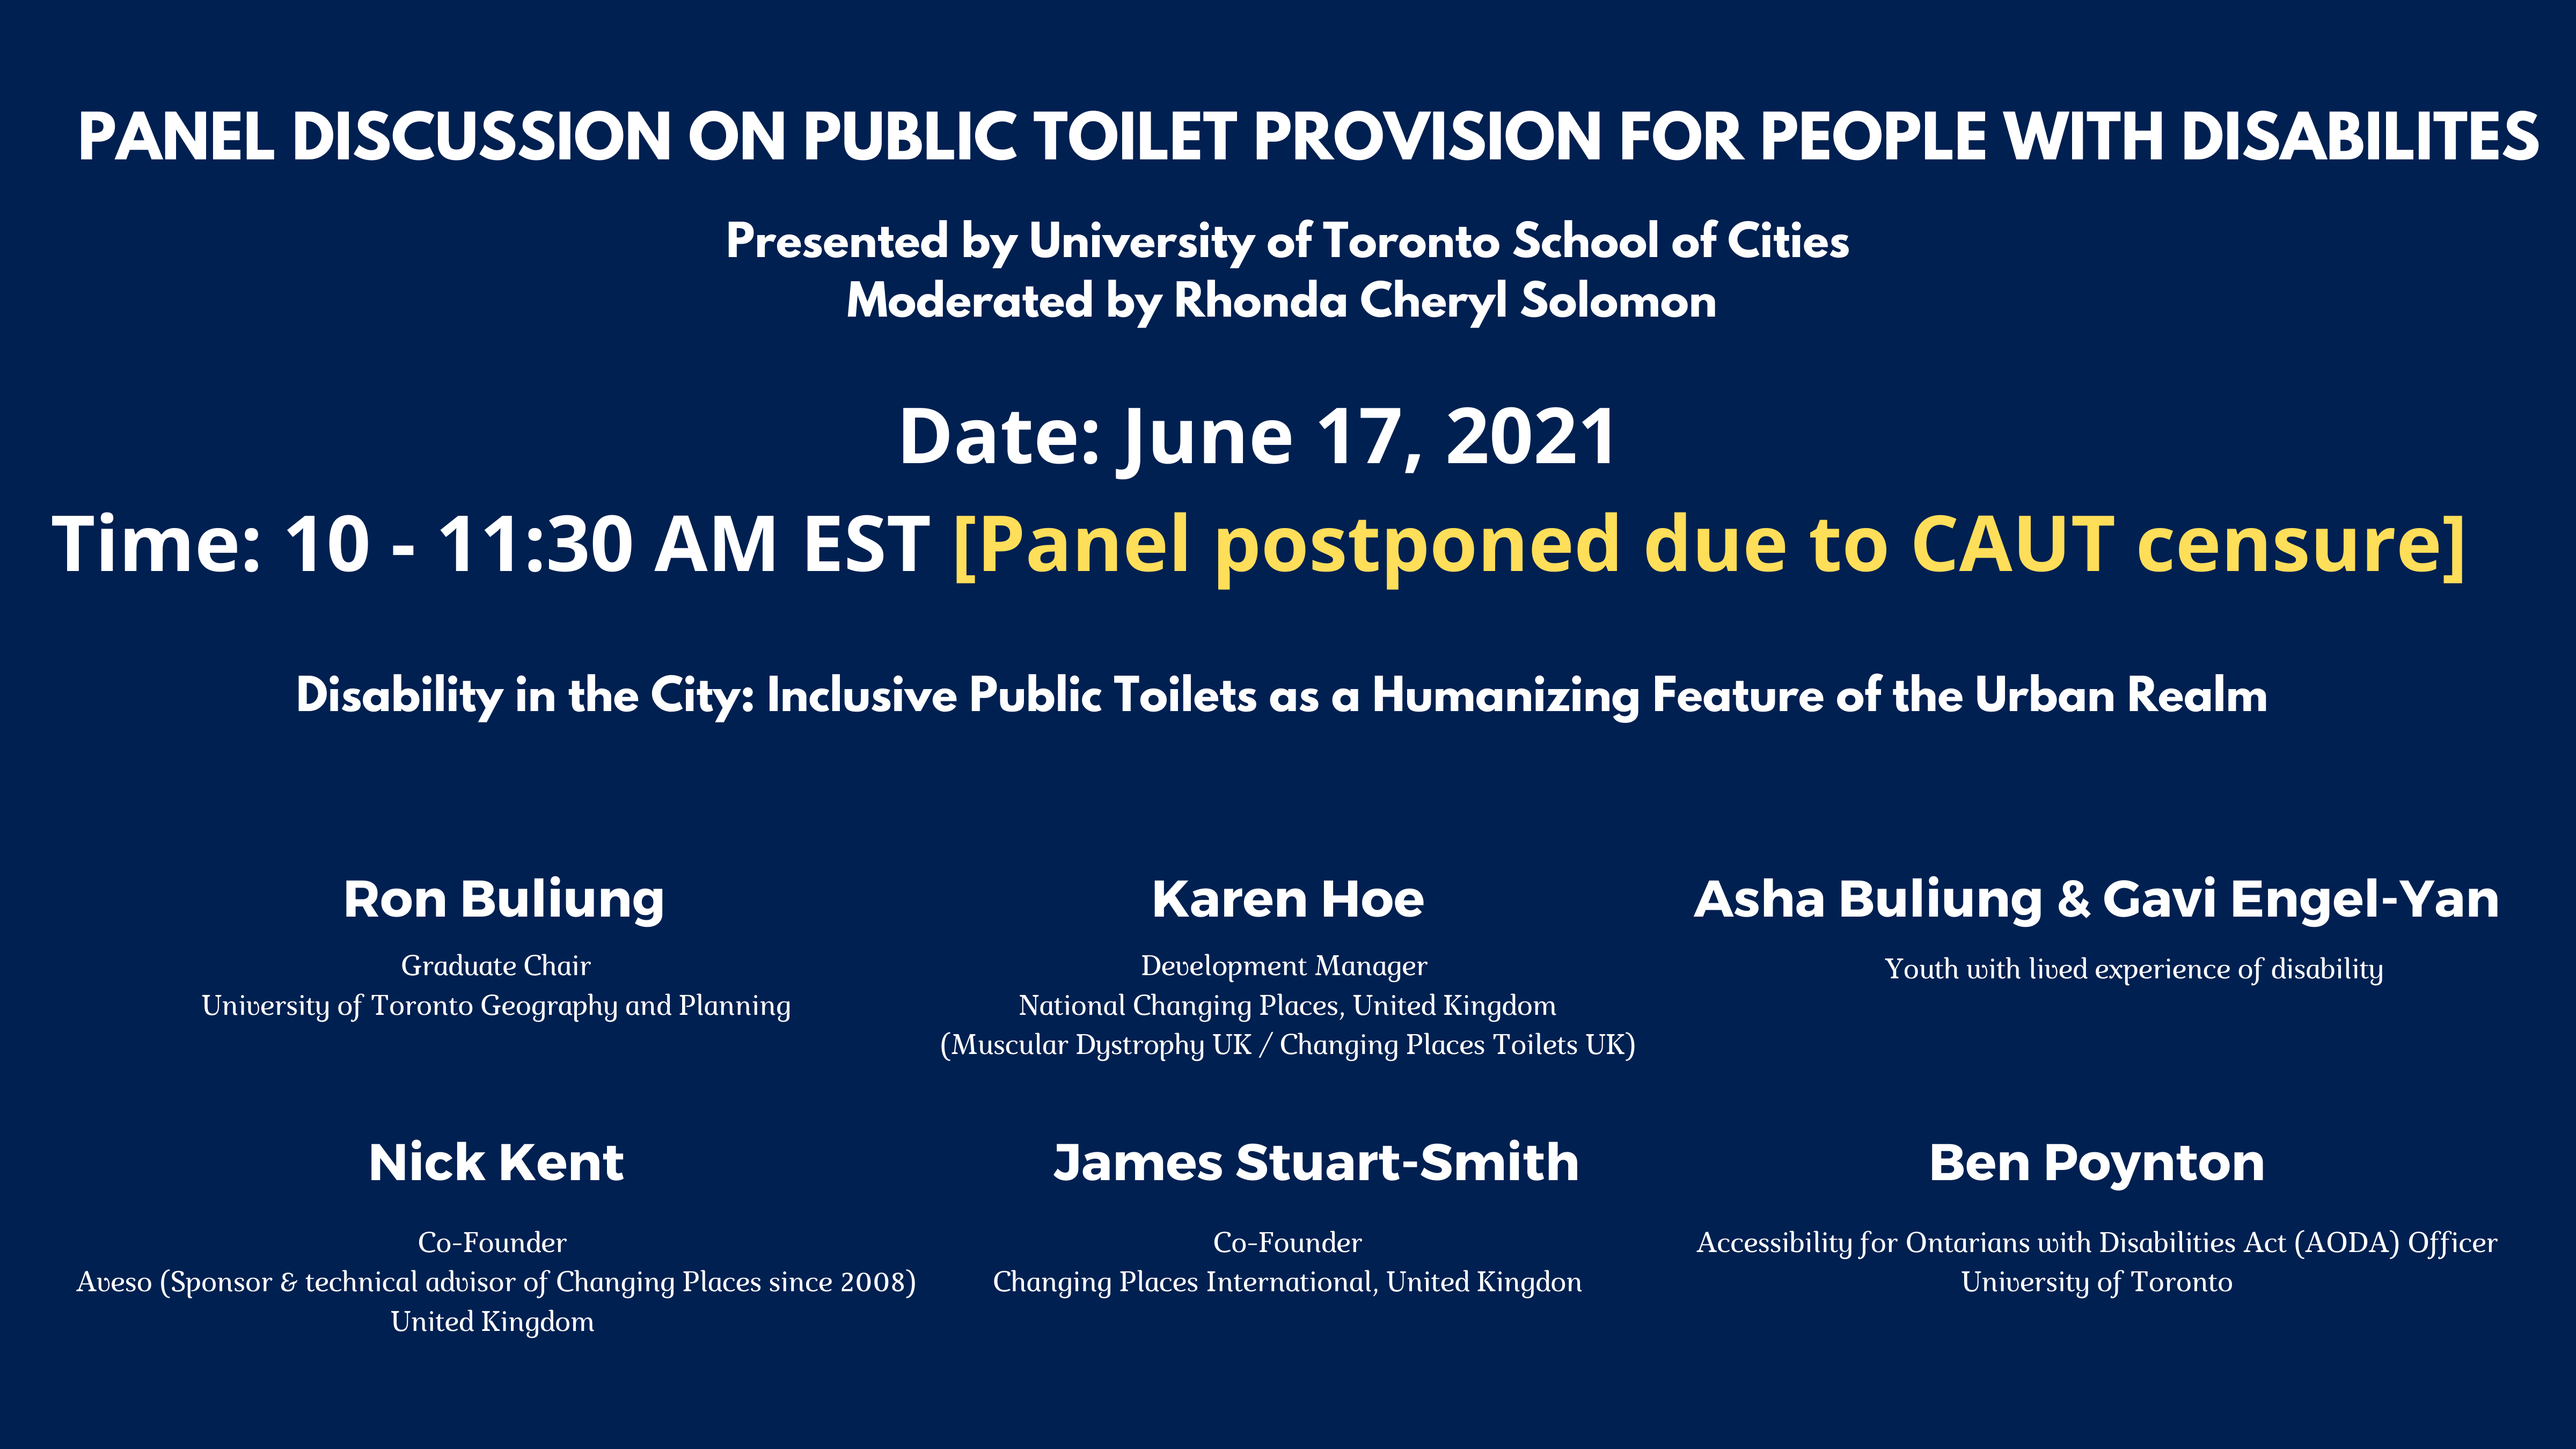 A information notice about the event being postponed due to U of T censure.